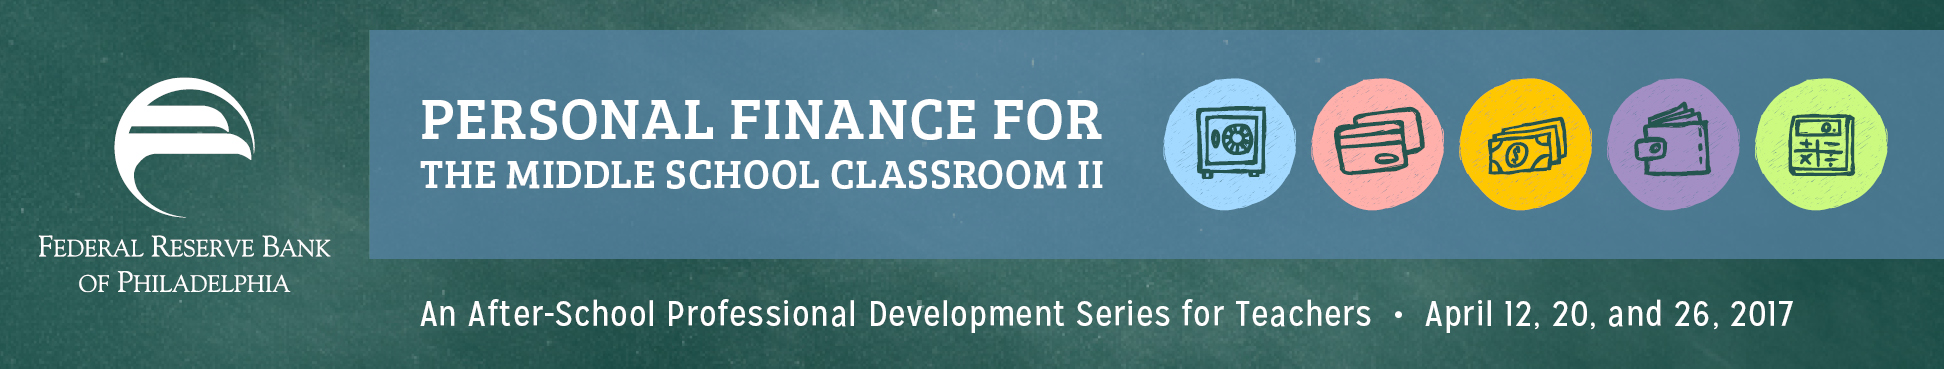 Personal Finance for the Middle School Classroom II